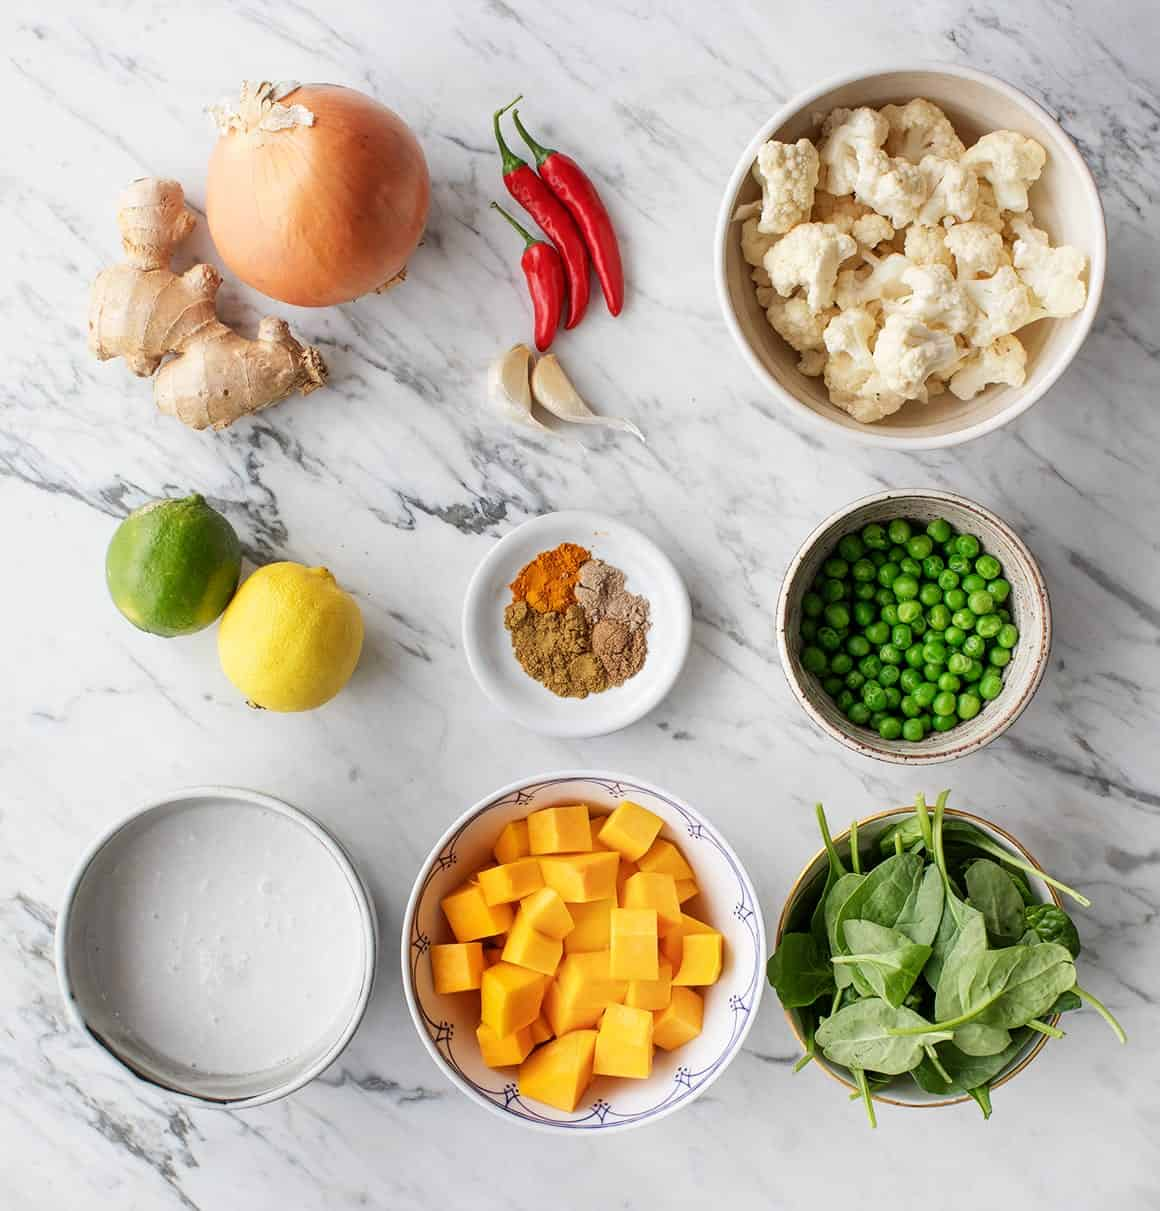 Vegetable Curry recipe ingredients